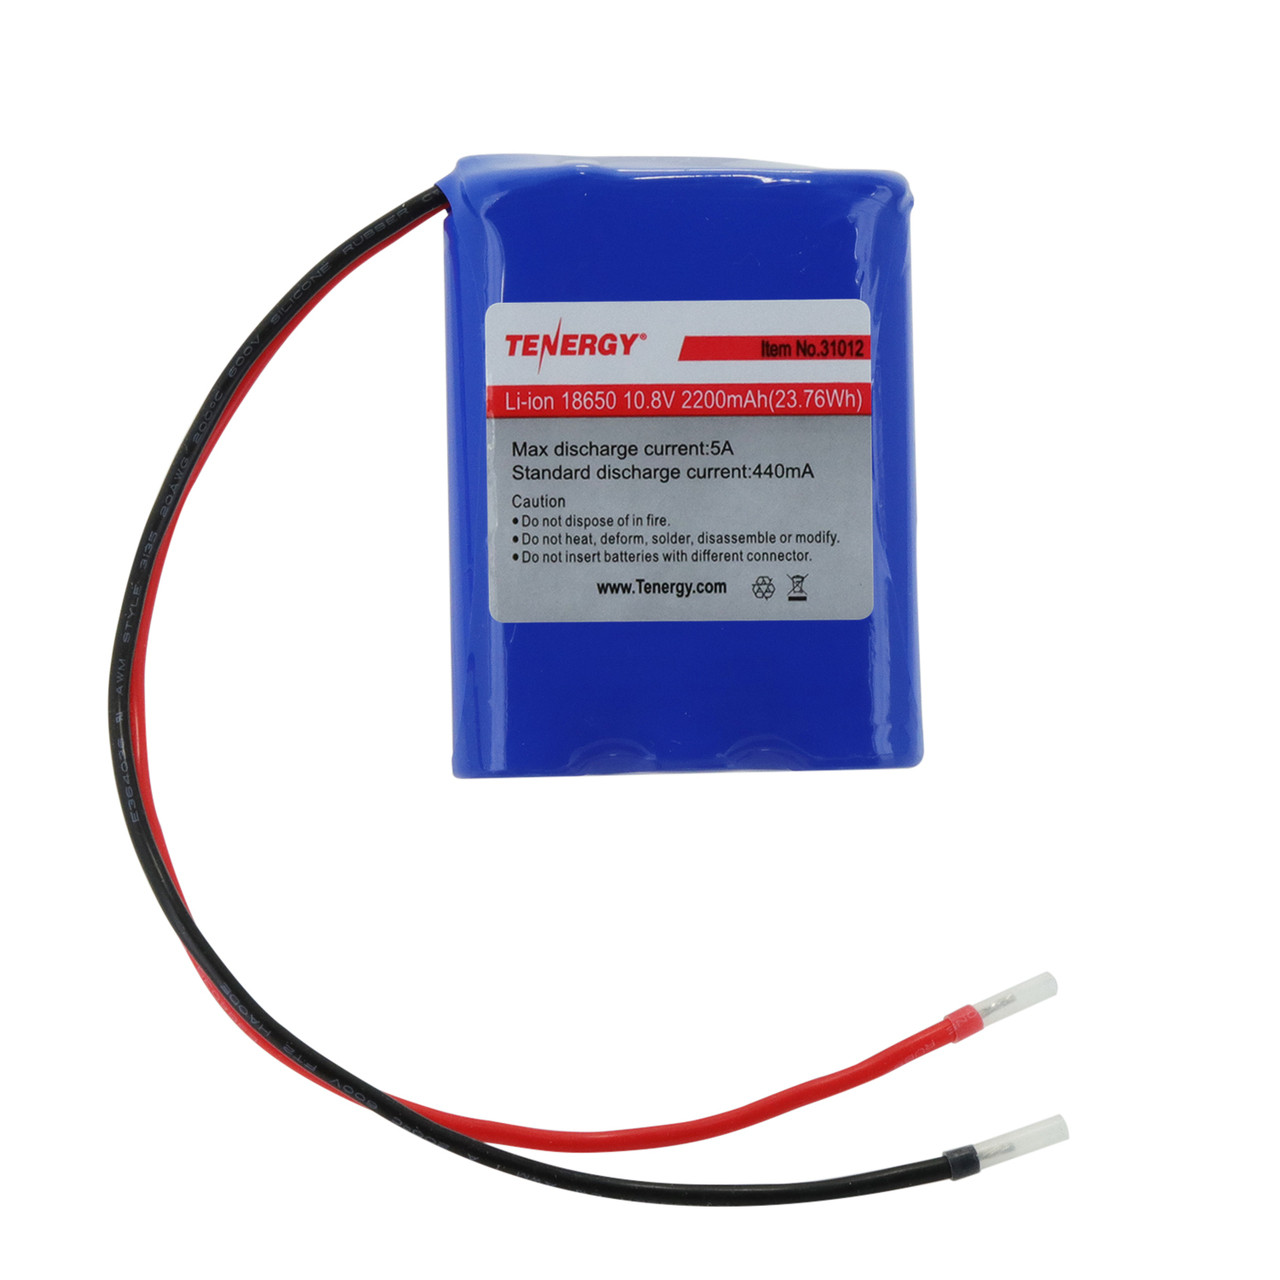 Tenergy Li-Ion 10.8V 2200mAh Rechargeable Battery Pack w/ PCB (3S1P, 23.76Wh, 4A Rate)